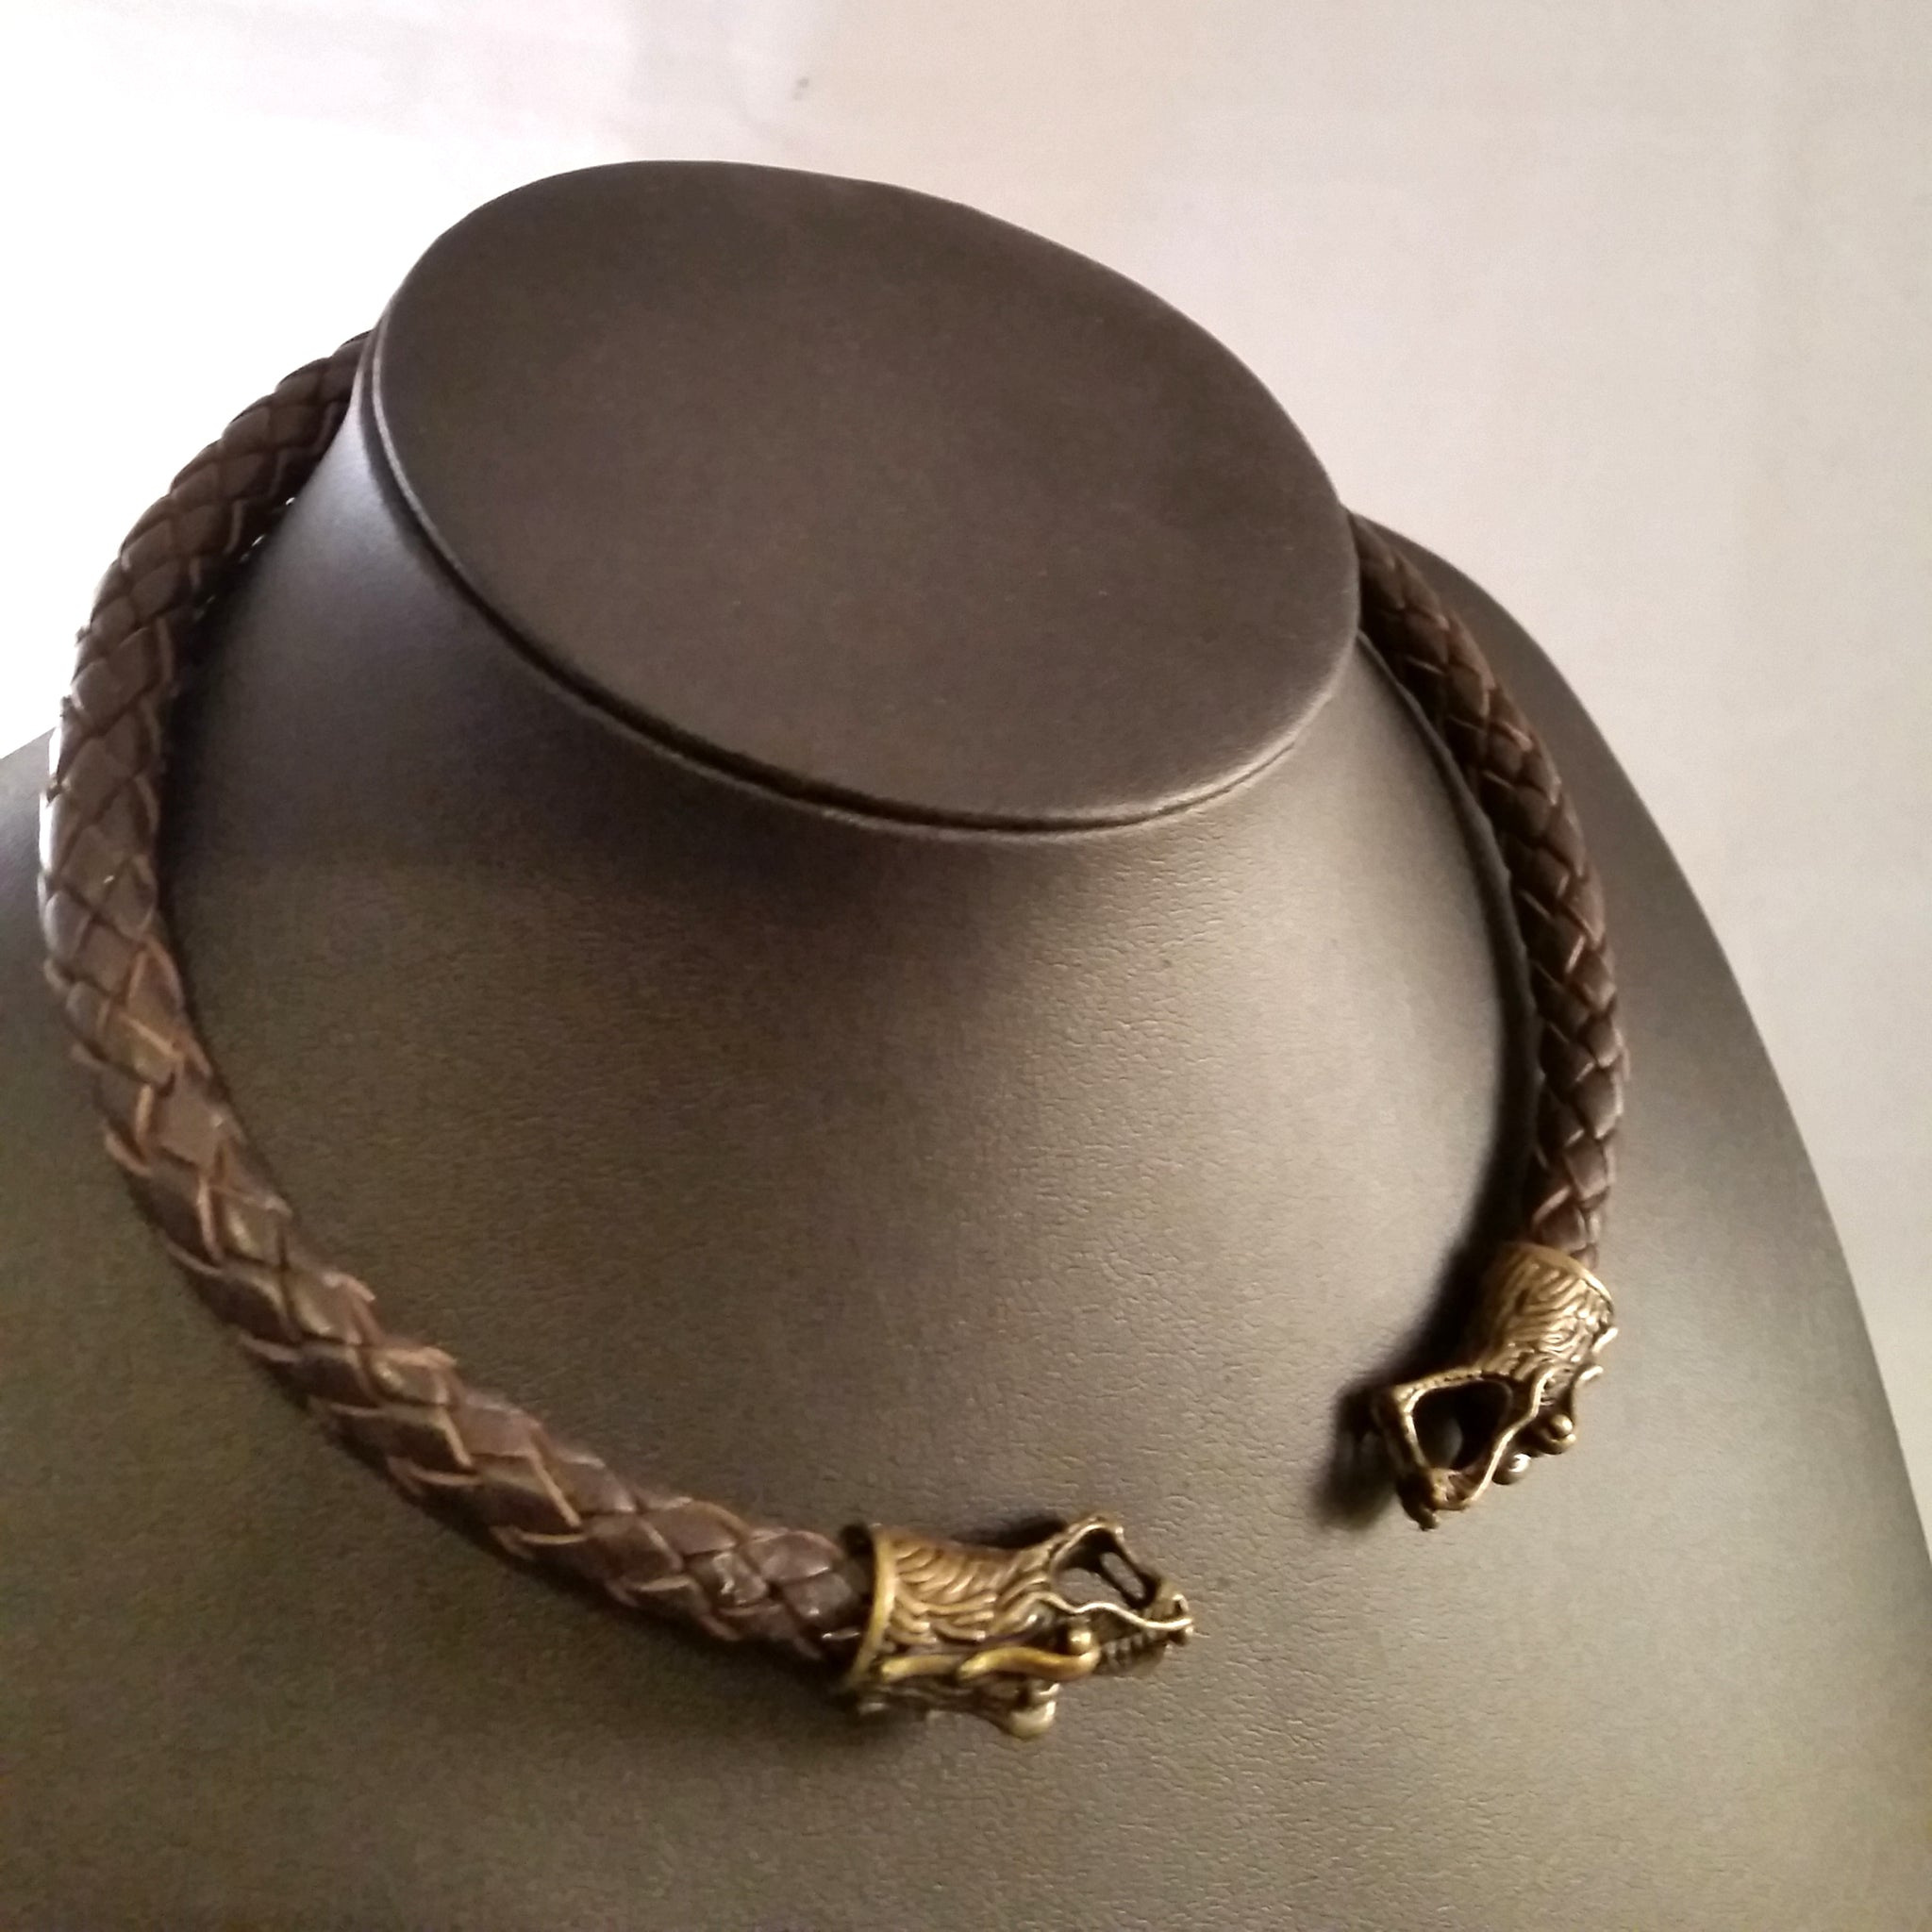 Dragon Torc Necklace Bronze Brown Leather Viking LARP Choker